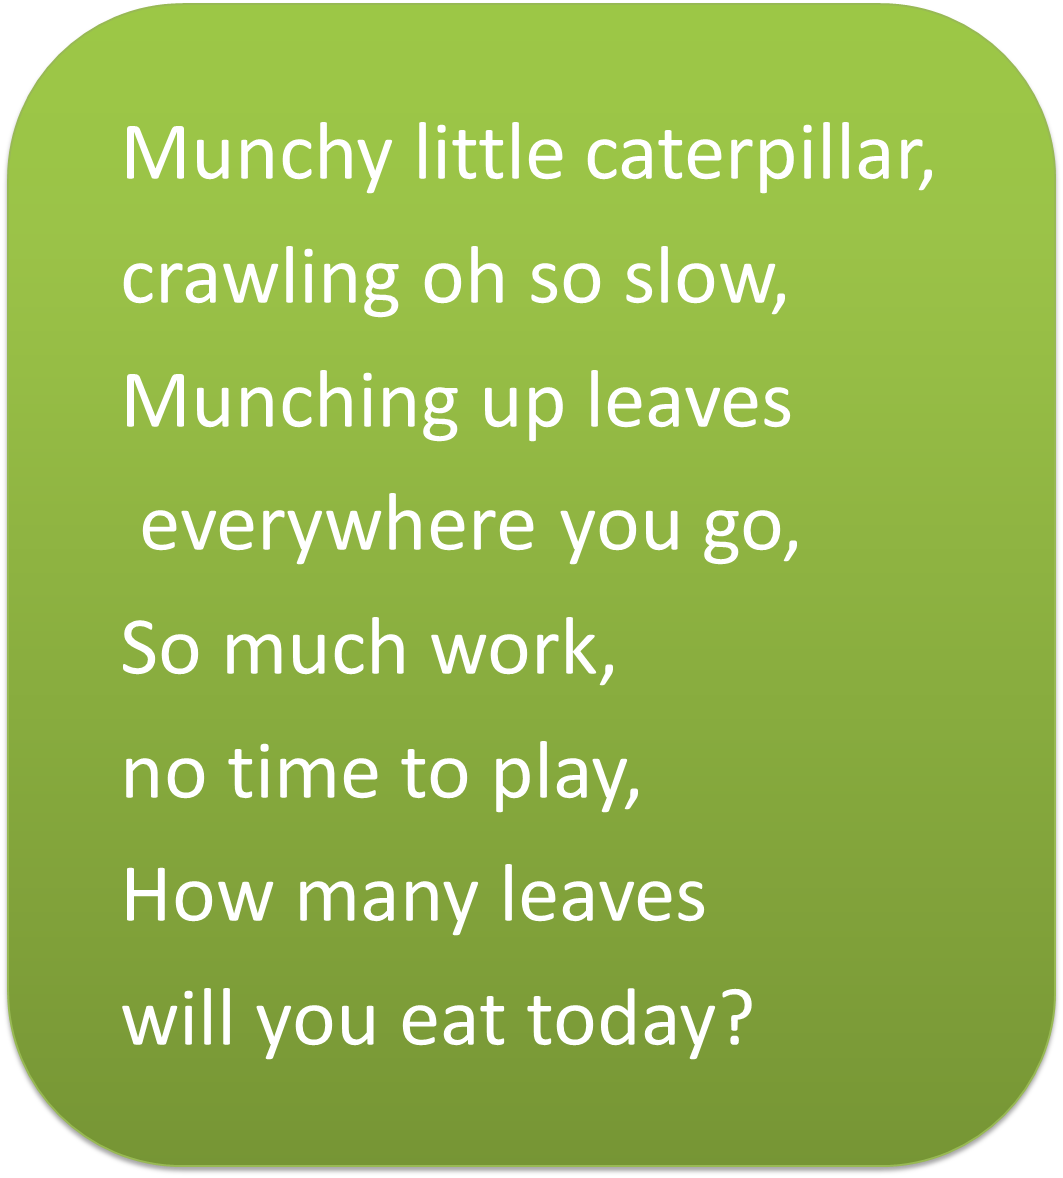 Meet Munchy Hungry Caterpillar on Spring Songs For Preschoolers